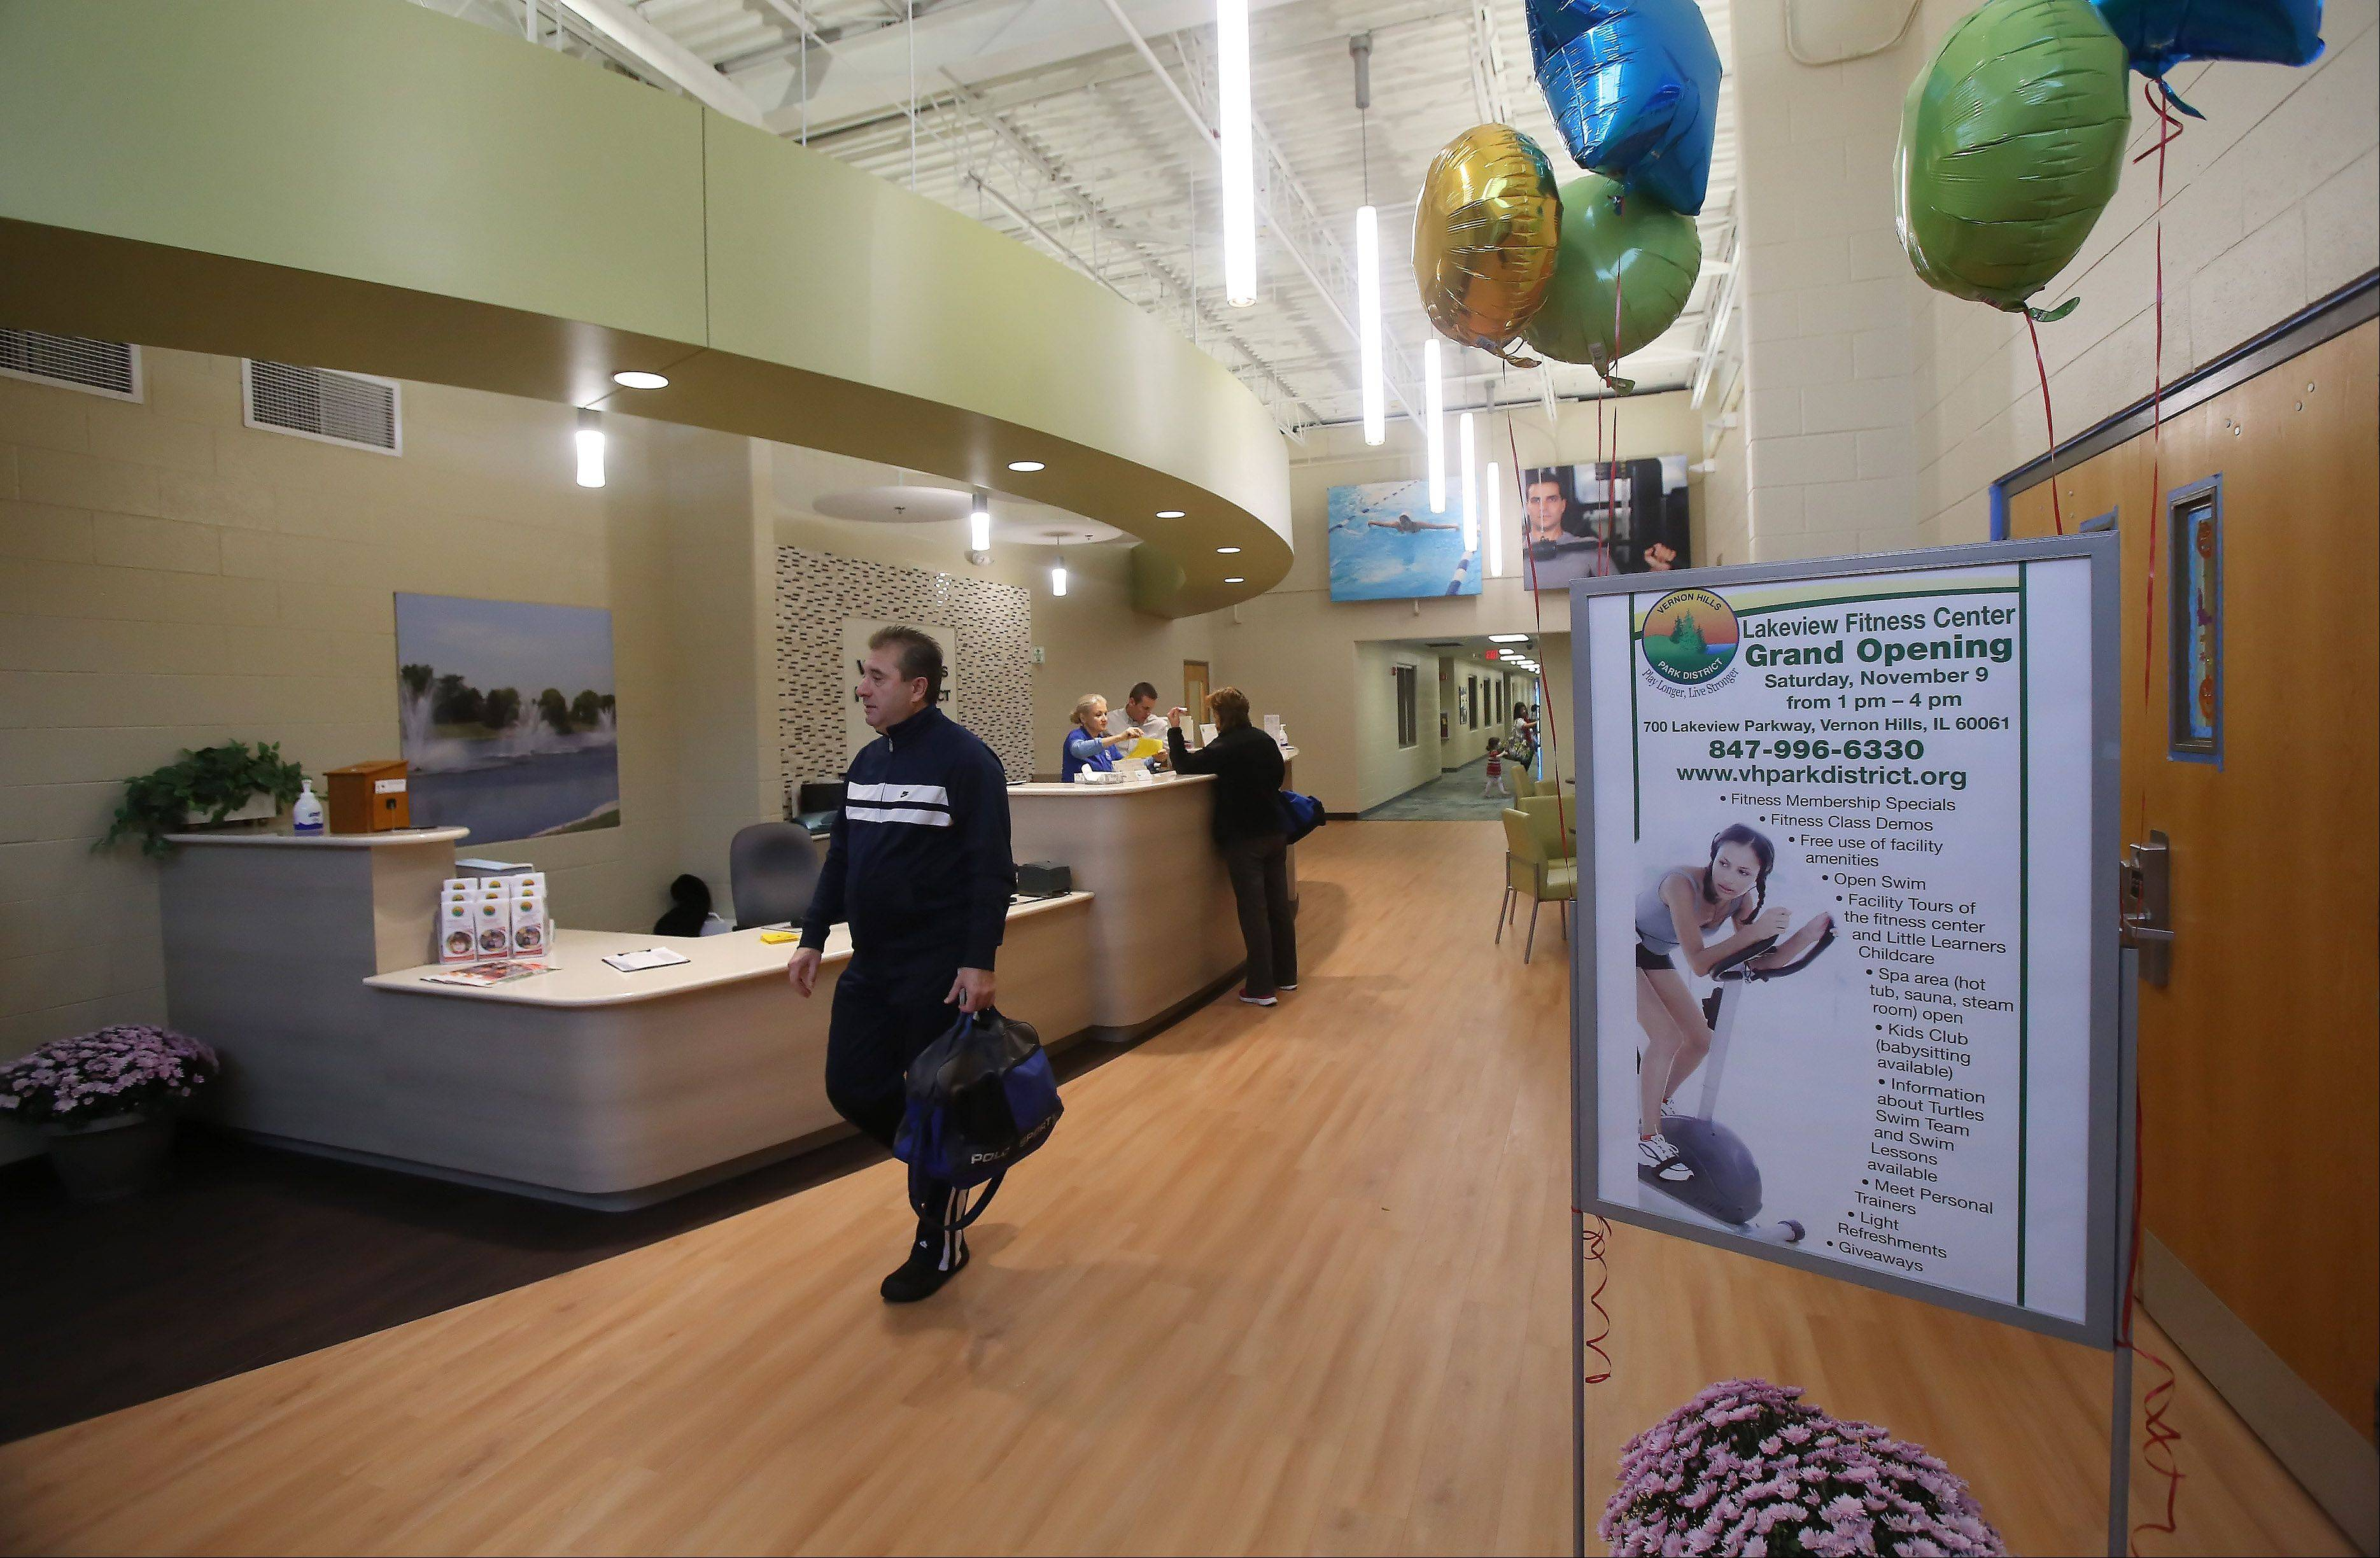 The reception area of the Lakeview Fitness Center in Vernon Hills has been reconfigured for better security. A grand reopening of the former Central Lake YMCA is scheduled for Saturday.